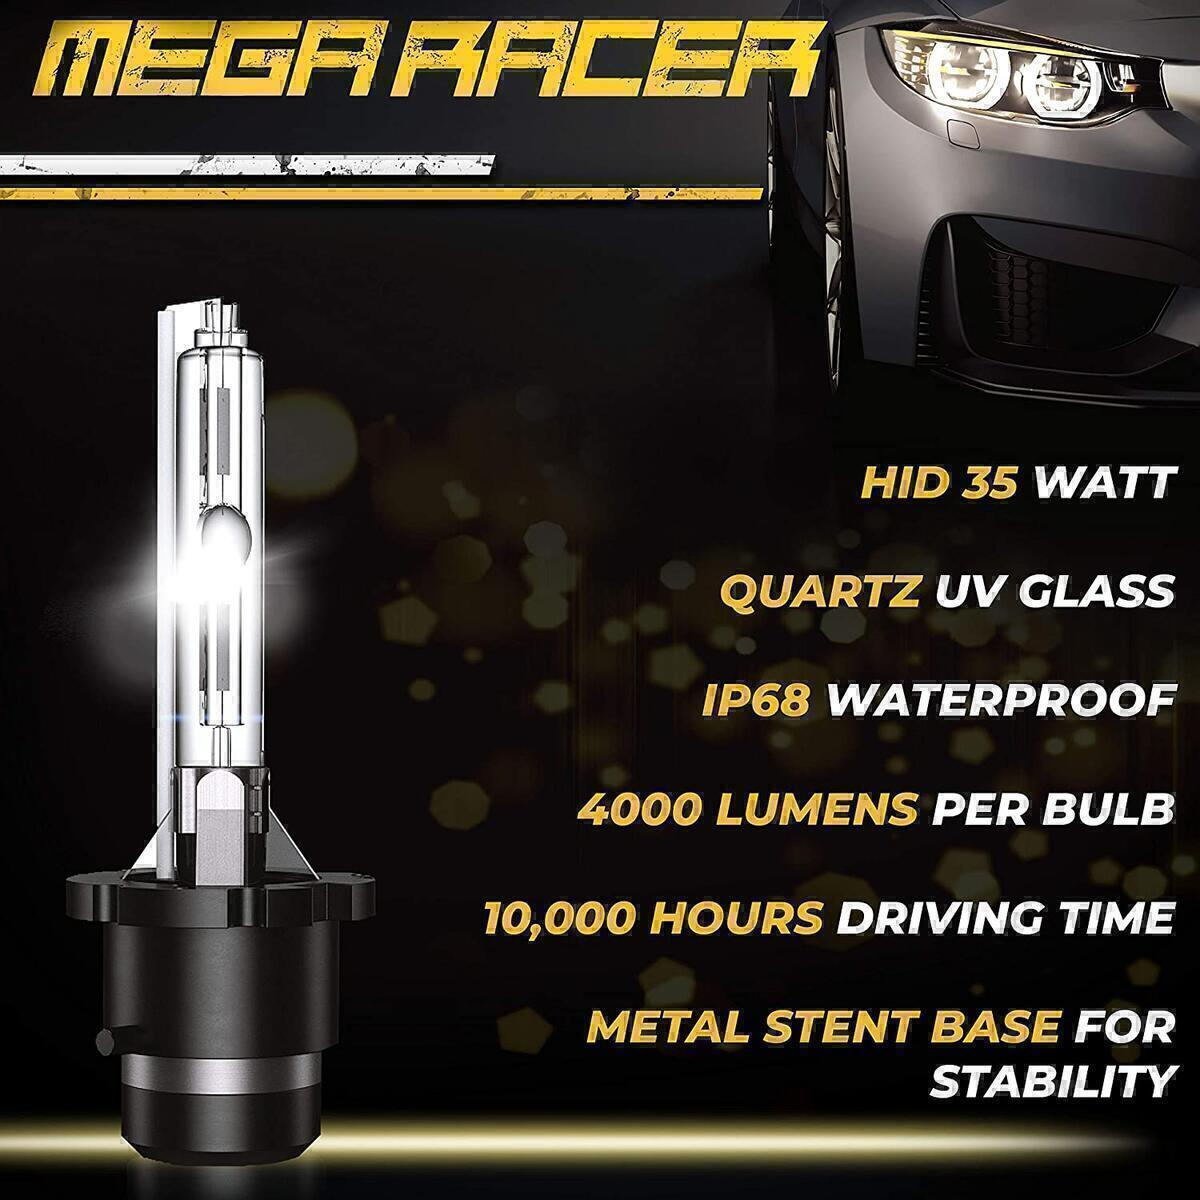 Mega Racer D2S Bulb 8000K Ice Blue D2S/D2R Xenon HID Bulbs for Low Beam High Beam Replacement Bulbs, 35W 8000 Lumens Metal Stents Base 12V IP68 Waterproof, Pack of 2